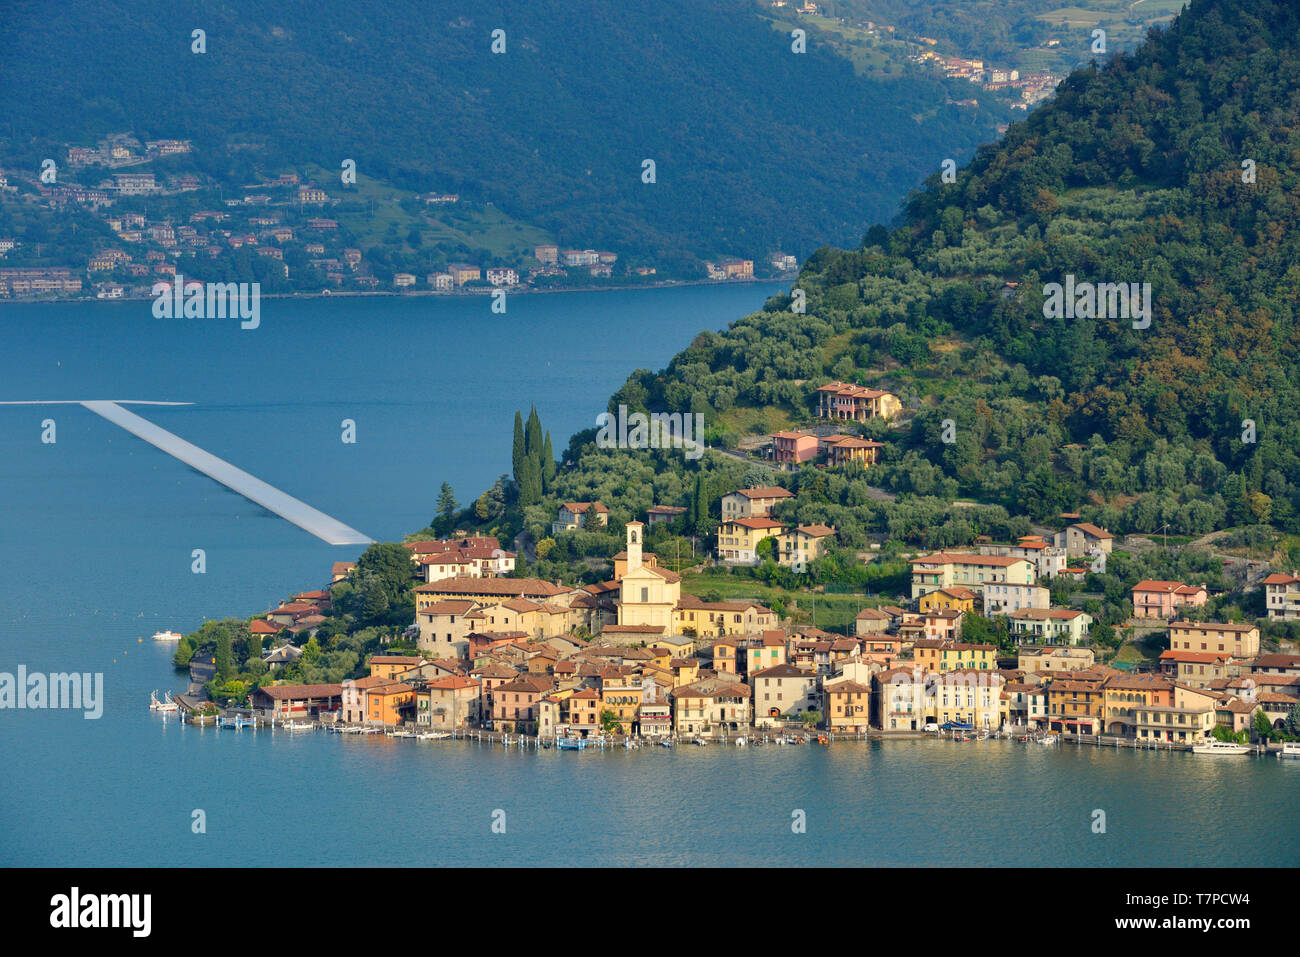 Italy, Lombardy, Iseo lake (Il Lago d'Iseo), Monte Isola island, Peschiera Maraglio village, The Floating Piers, Christo artist - Stock Image